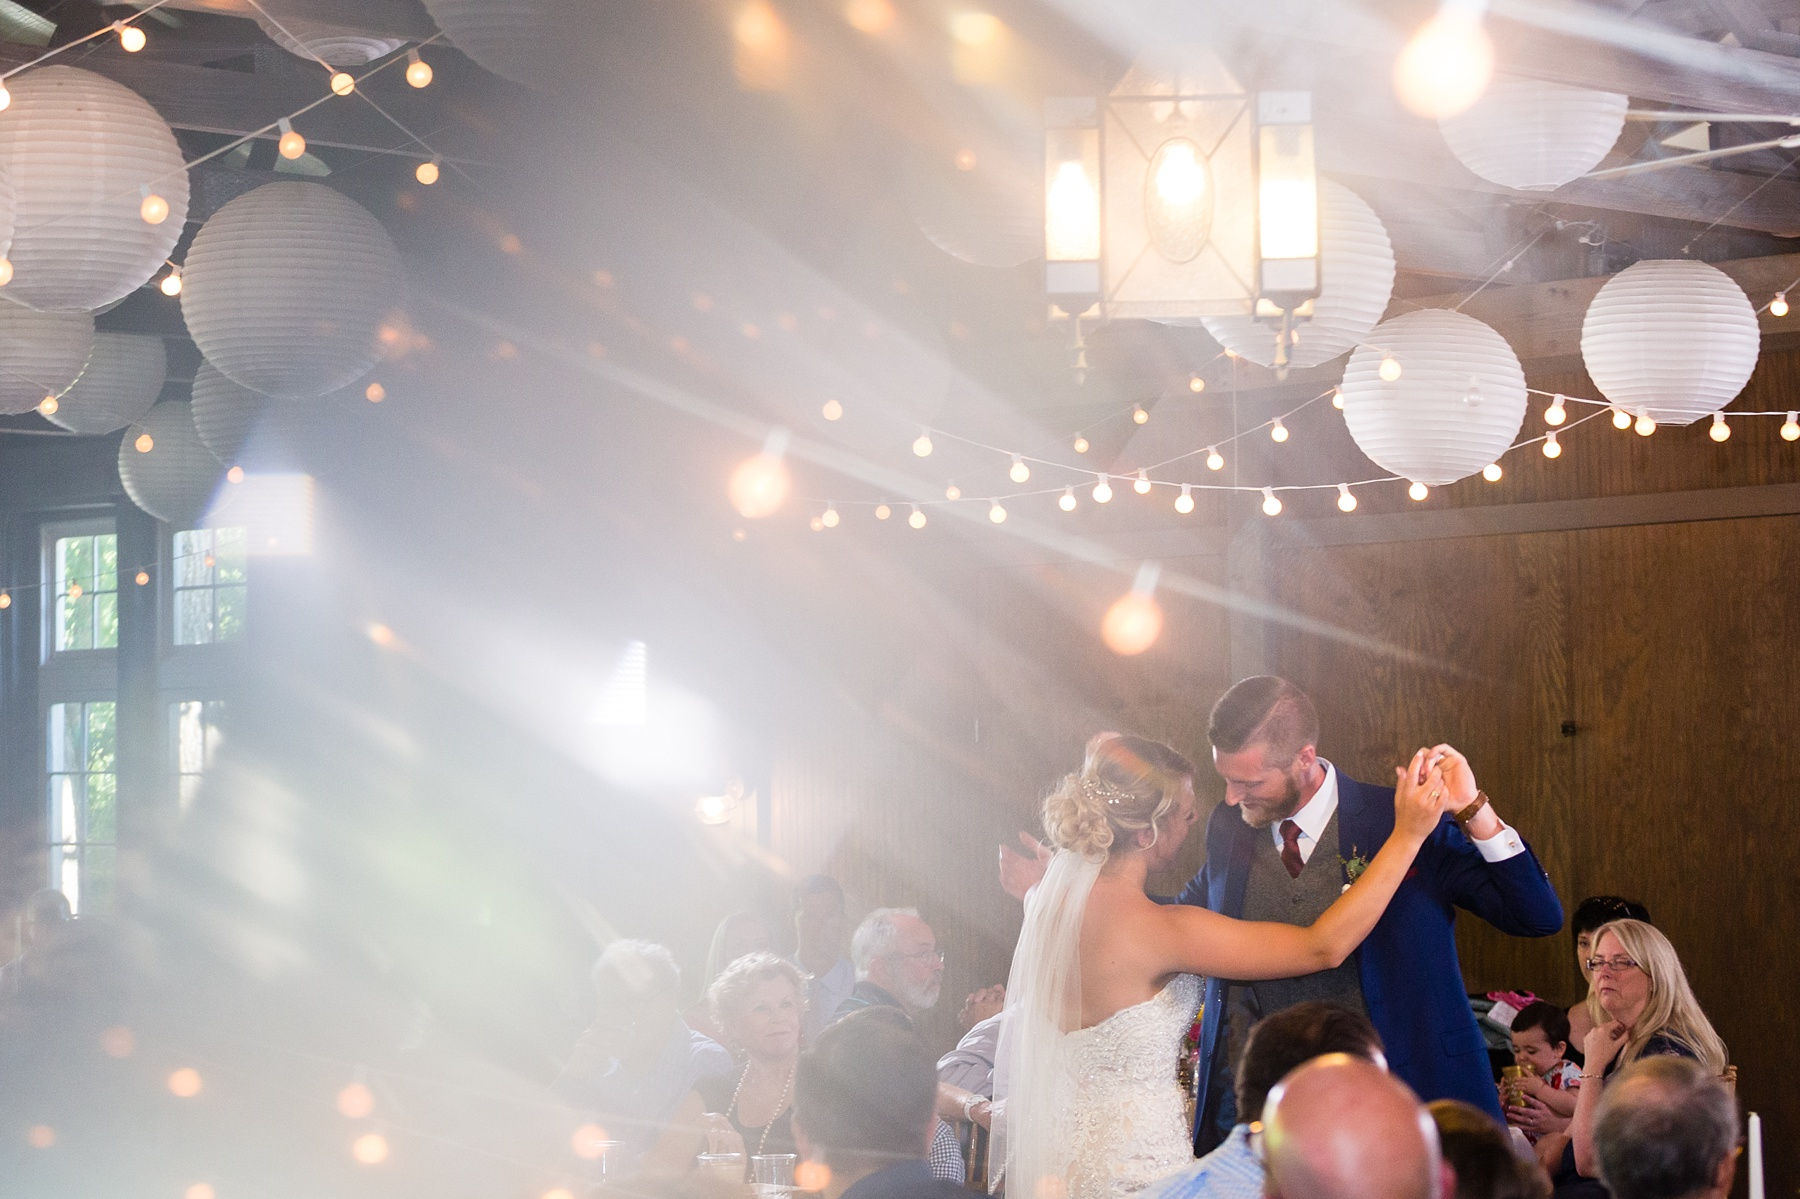 Brandon_Shafer_Photography_Millcreek_Wilde_Barn_Wedding_0039.jpg